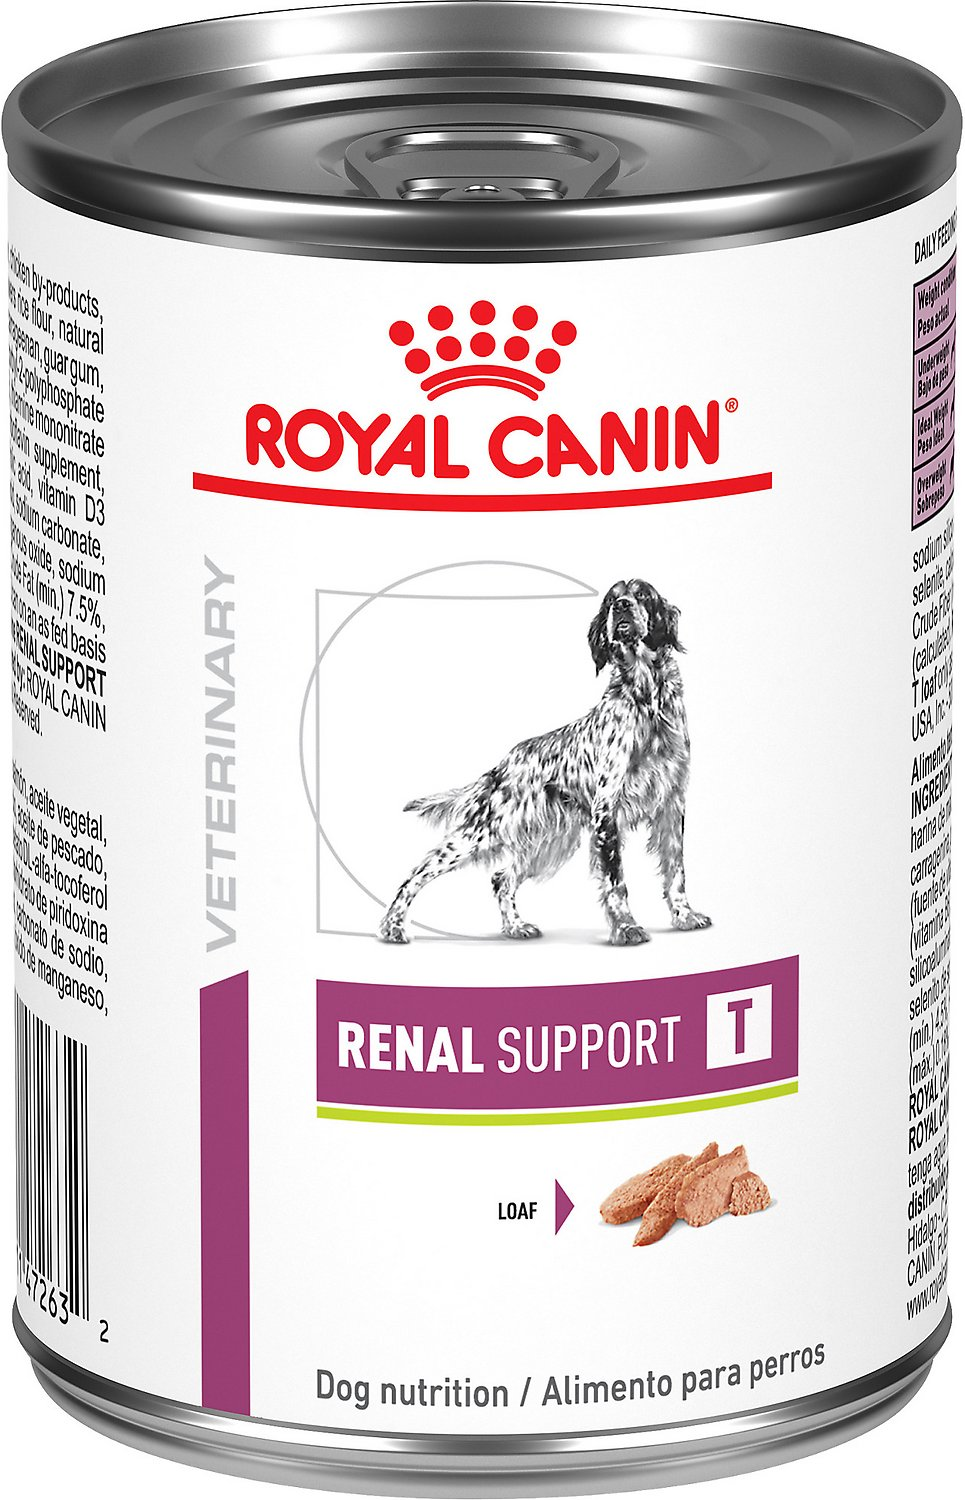 Royal Canin Renal Support Canned Dog Food